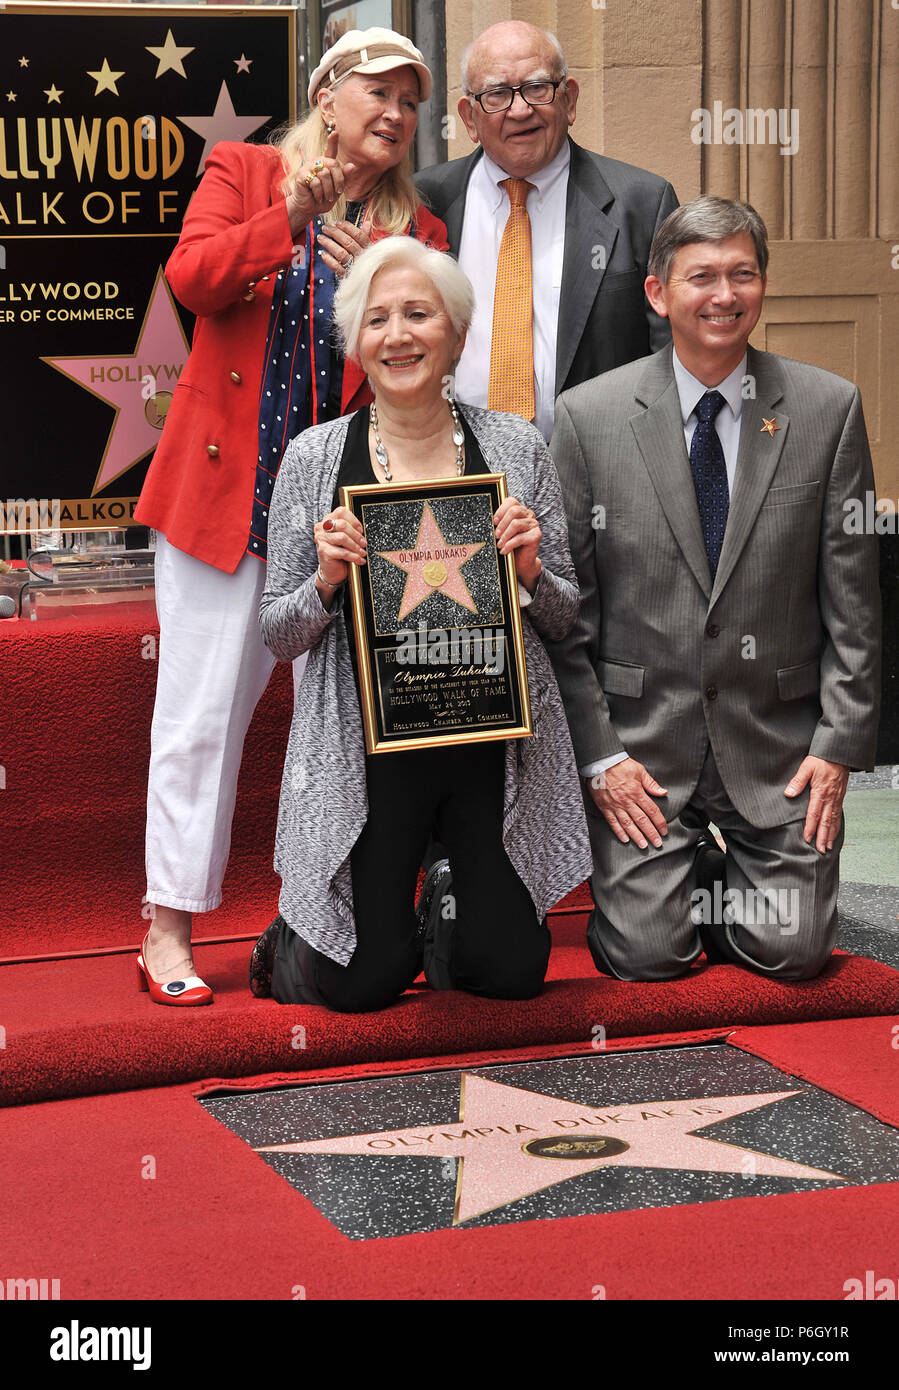 Olympia Dukakis - star  Ed Asner, Diane Ladd  Olympia Dukakis honored with a Star on the Hollywood Walk of Fame in Los Angeles.Olympia Dukakis - star 1302 Ed Asner, Diane Ladd   Event in Hollywood Life - California, Red Carpet Event, USA, Film Industry, Celebrities, Photography, Bestof, Arts Culture and Entertainment, Topix Celebrities fashion, Best of, Hollywood Life, Event in Hollywood Life - California, movie celebrities, TV celebrities, Music celebrities, Topix, Bestof, Arts Culture and Entertainment, Photography,    inquiry tsuni@Gamma-USA.com , Credit Tsuni / USA, Honored with a Star on  - Stock Image